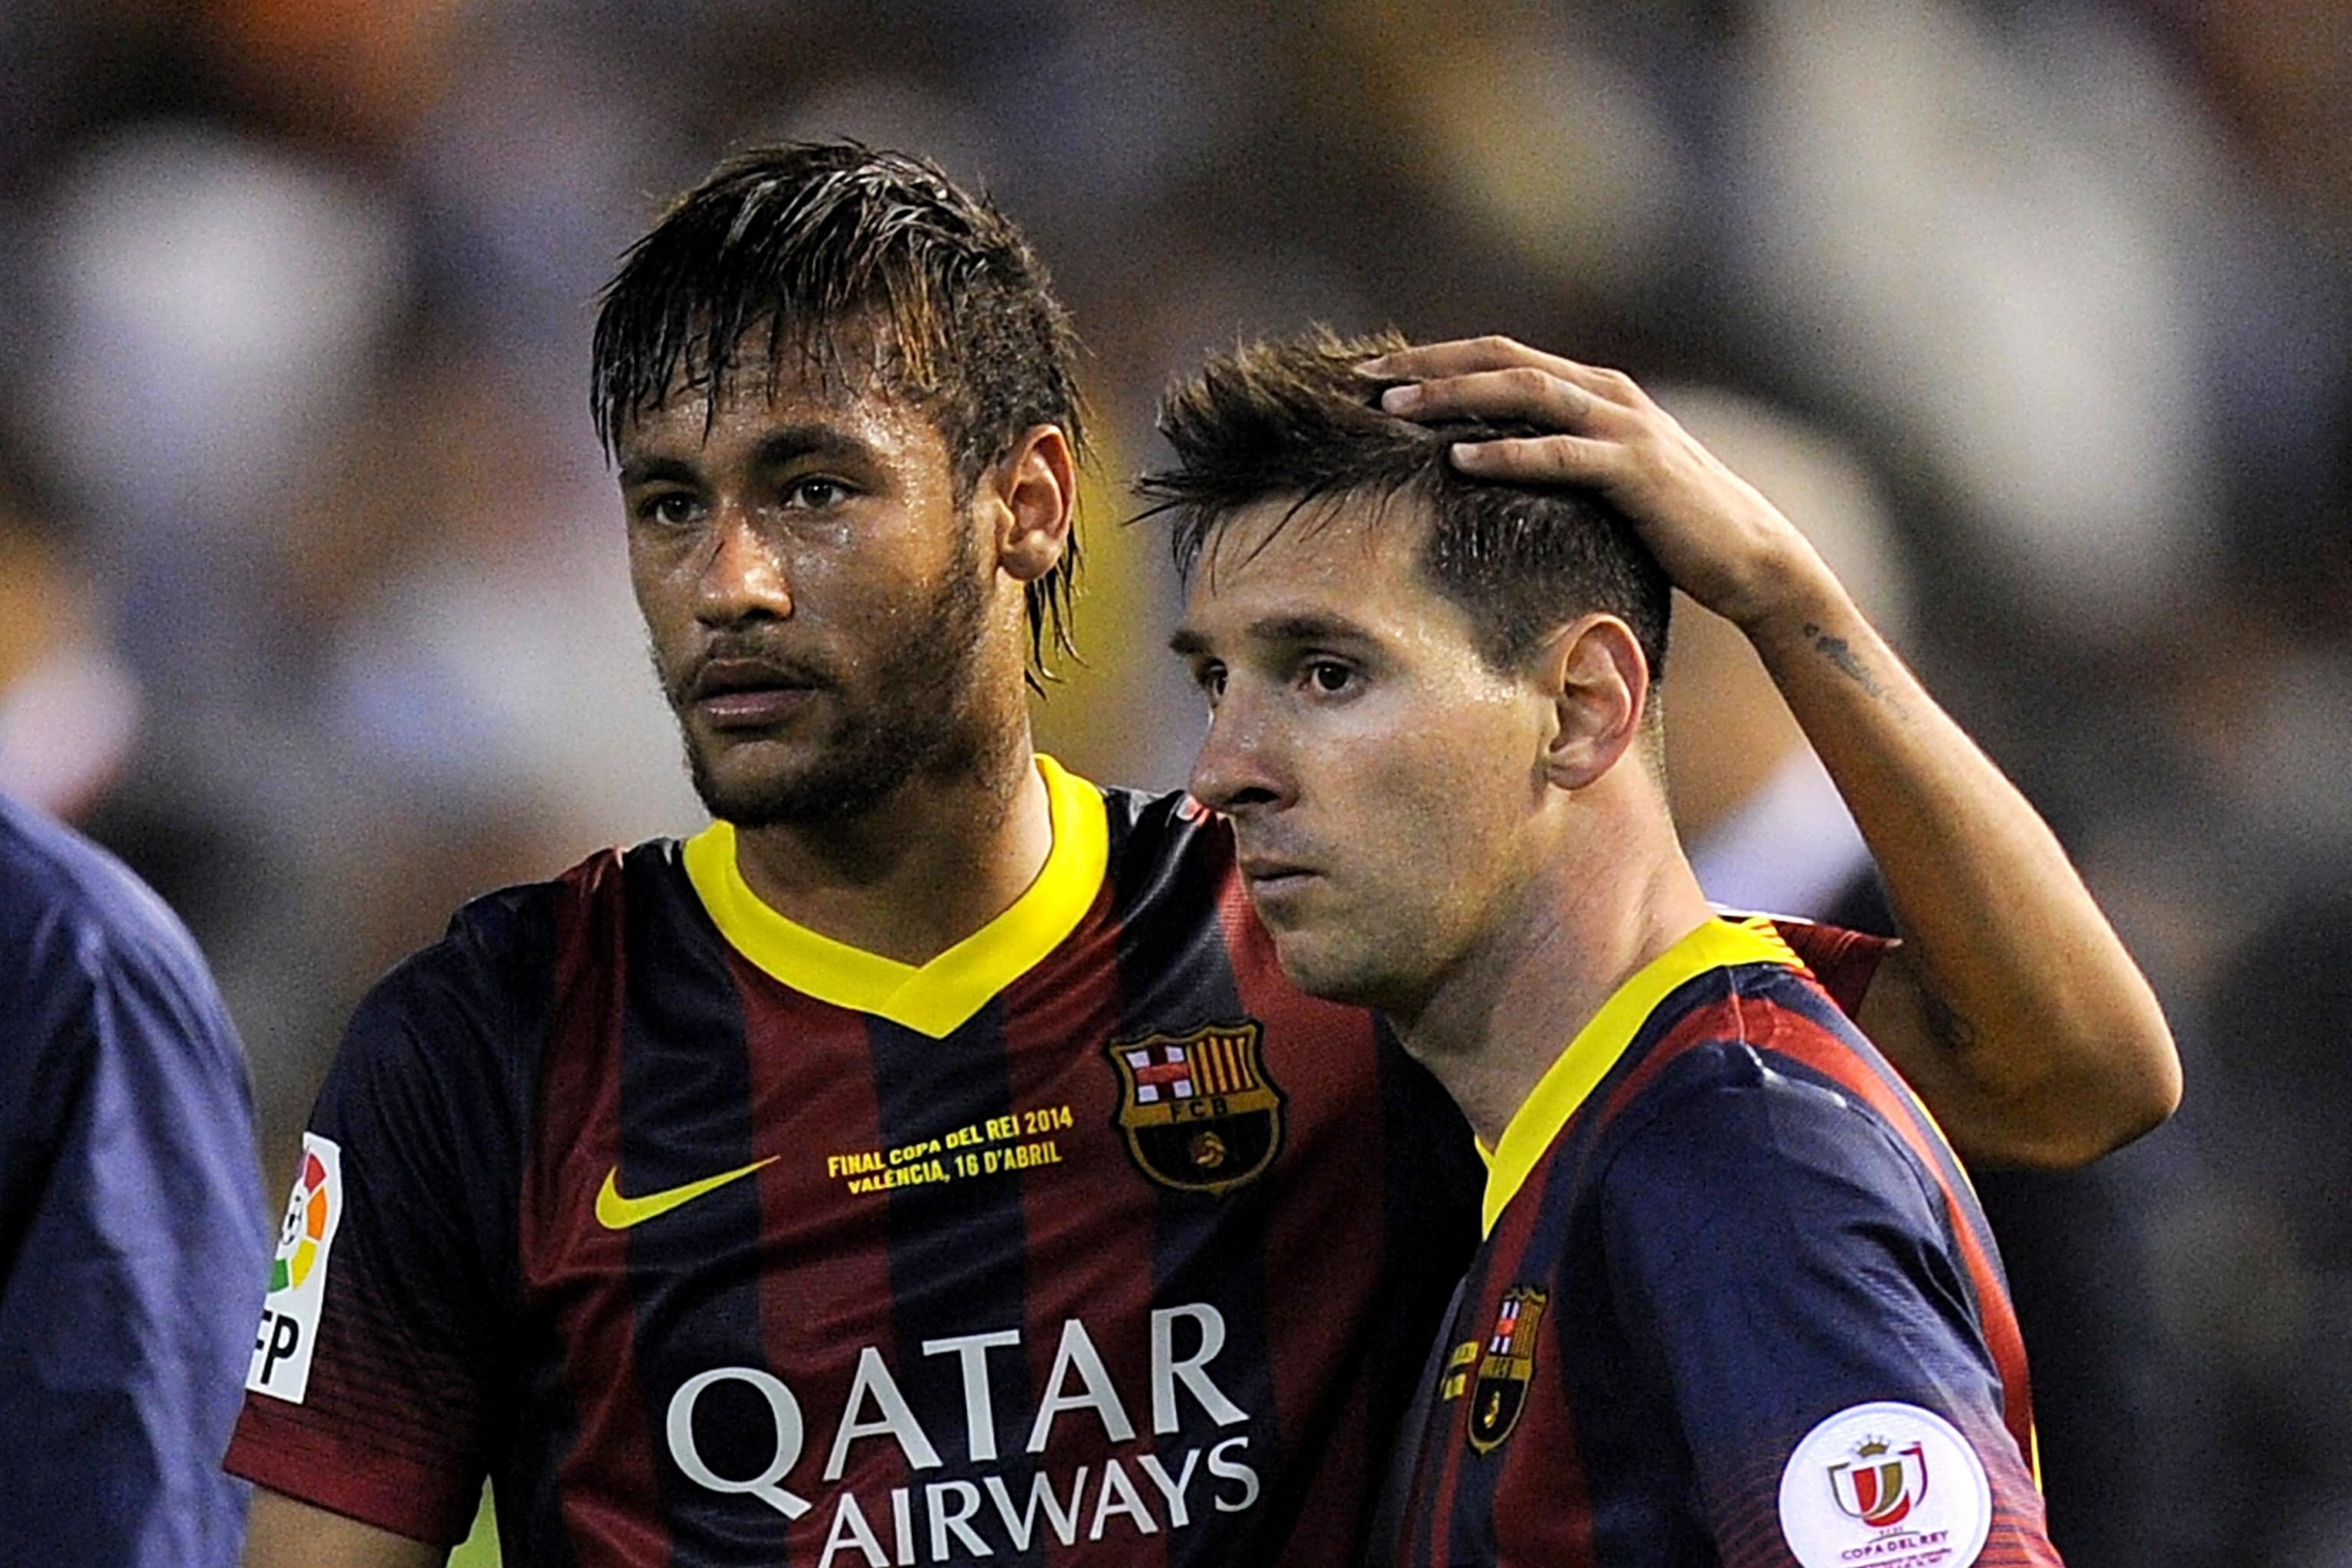 Neymar Admits He May Never Reach Lionel Messi And Cristiano Ronaldo Heights Bleacher Report Latest News Videos And Highlights